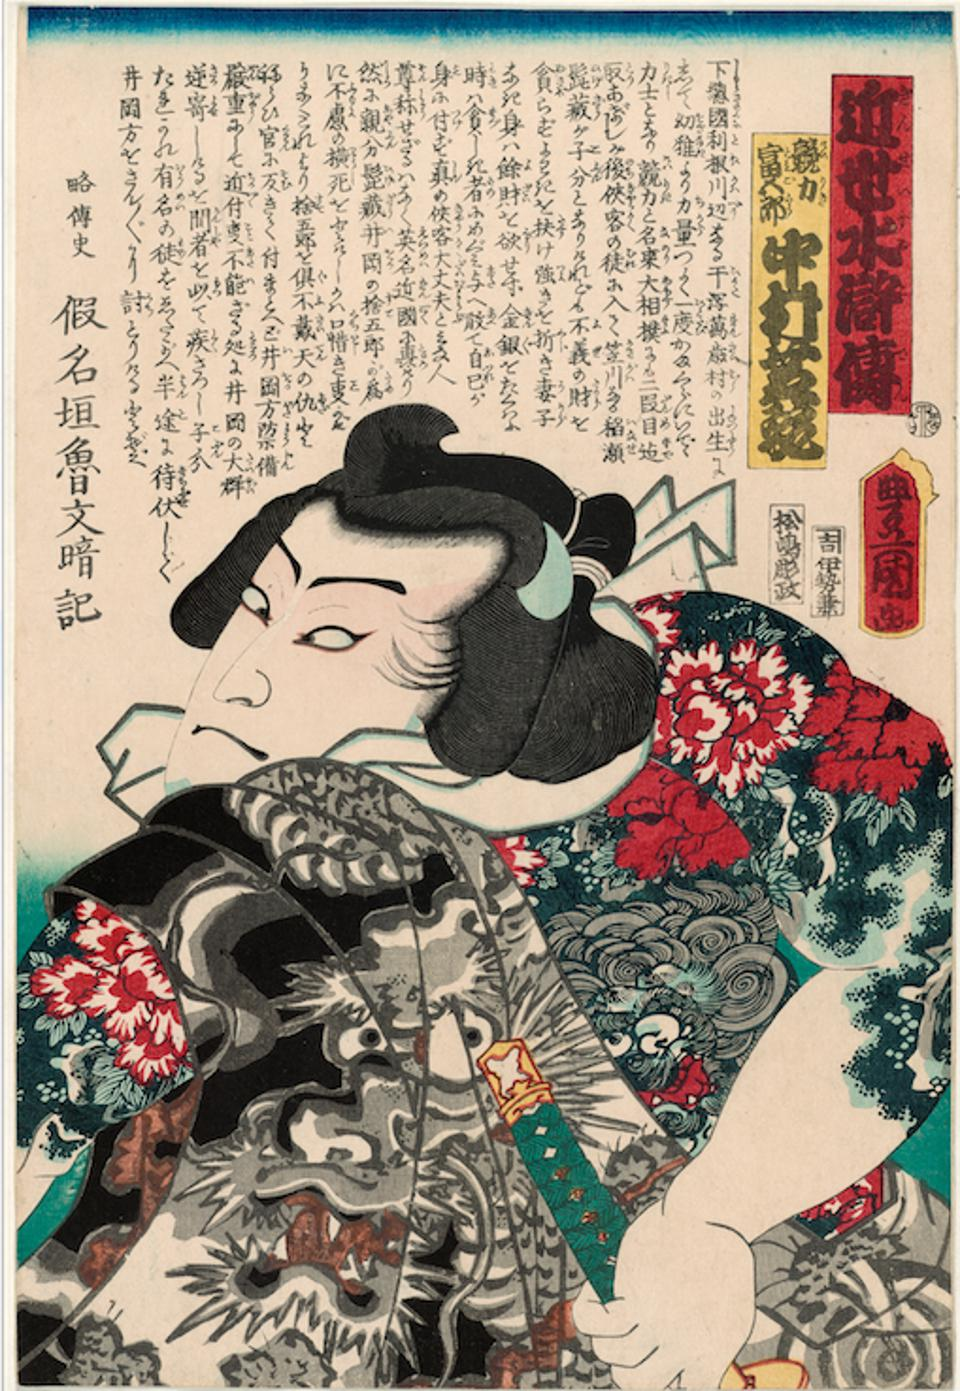 Actor Nakamura Shikan IV as the Wrestler Tomigoro,  from  the  series  A Modern Water Margin,  1861,  by  Utagawa  Kunisada  I  (Toyokuni  III);  1786–1864. Woodblock  print;  ink  and  colors  on  paper.  Museum of Fine Arts, Boston, William Sturgis Bigelow  Collection,  11.42777.  Photograph  ©  Museum  of  Fine  Arts,  Boston.